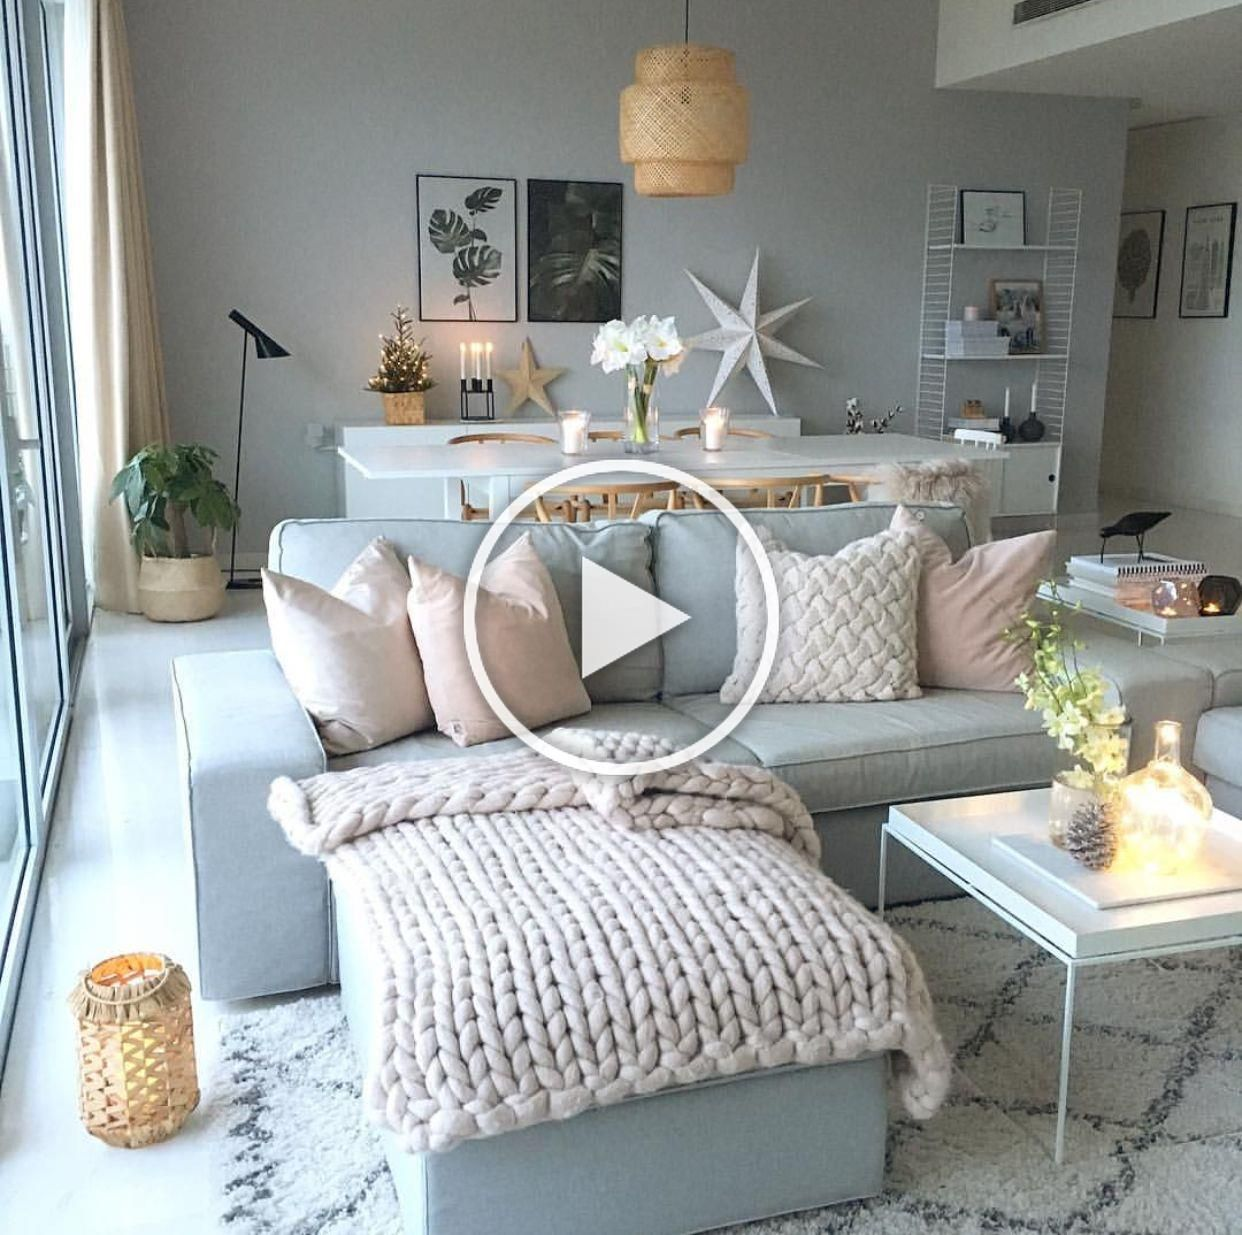 @byidaryding stylist living in Sweden and Singapore styling our Oversize Knitt Woollen Throw perfectly every time!  #stylist #interiors #knitting #wool #chunkyknitting #chunkythrow